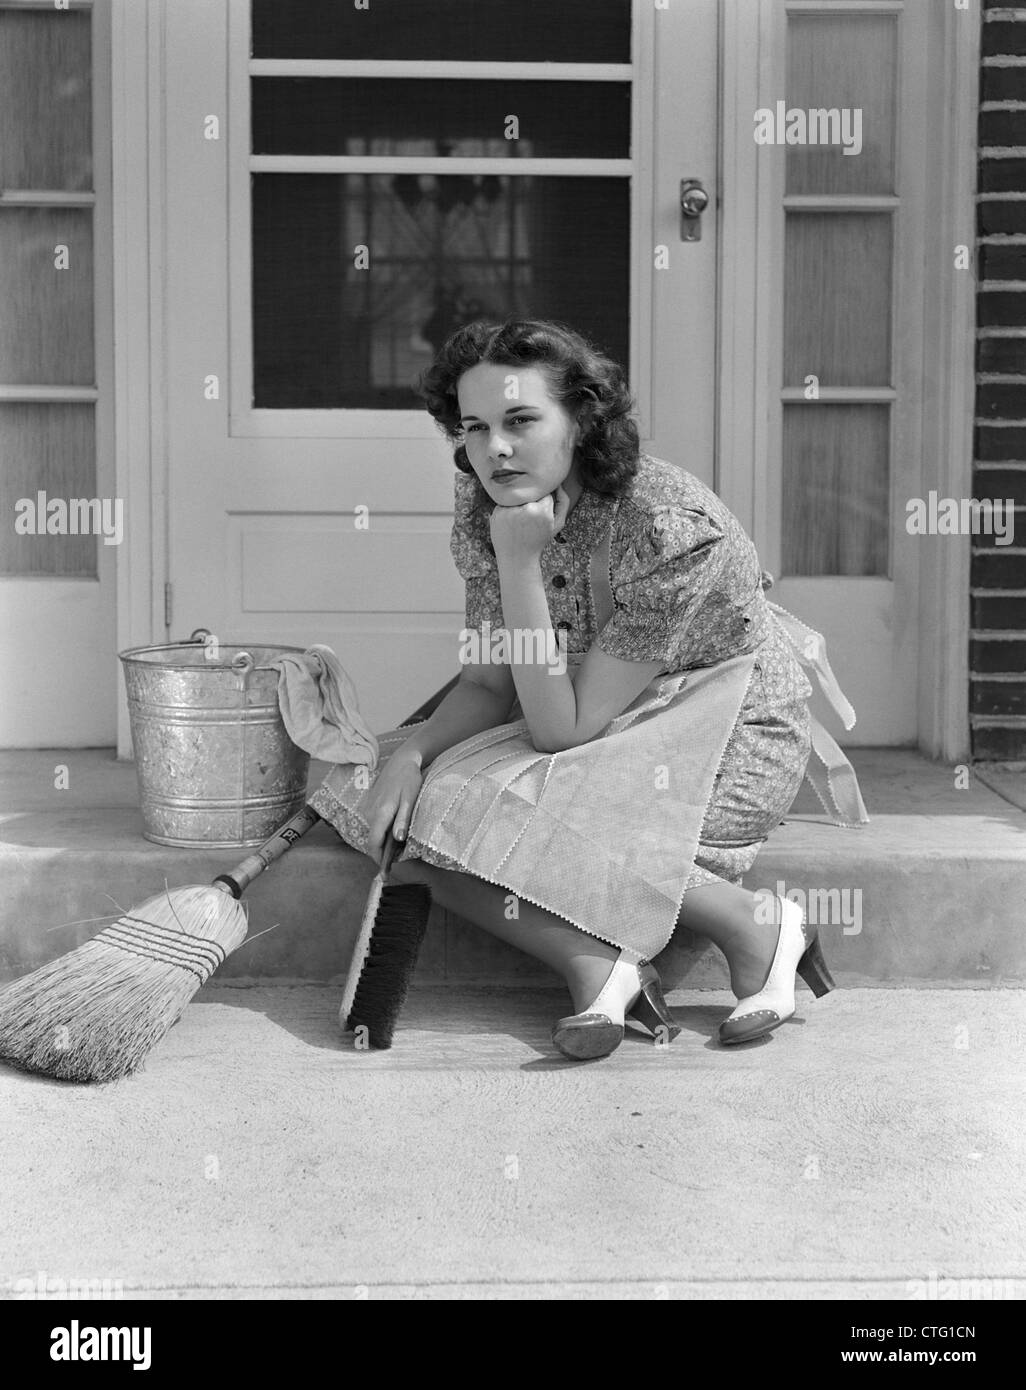 1930s 1940s woman housewife sitting on front door step surrounded by stock photo 49524853 alamy. Black Bedroom Furniture Sets. Home Design Ideas